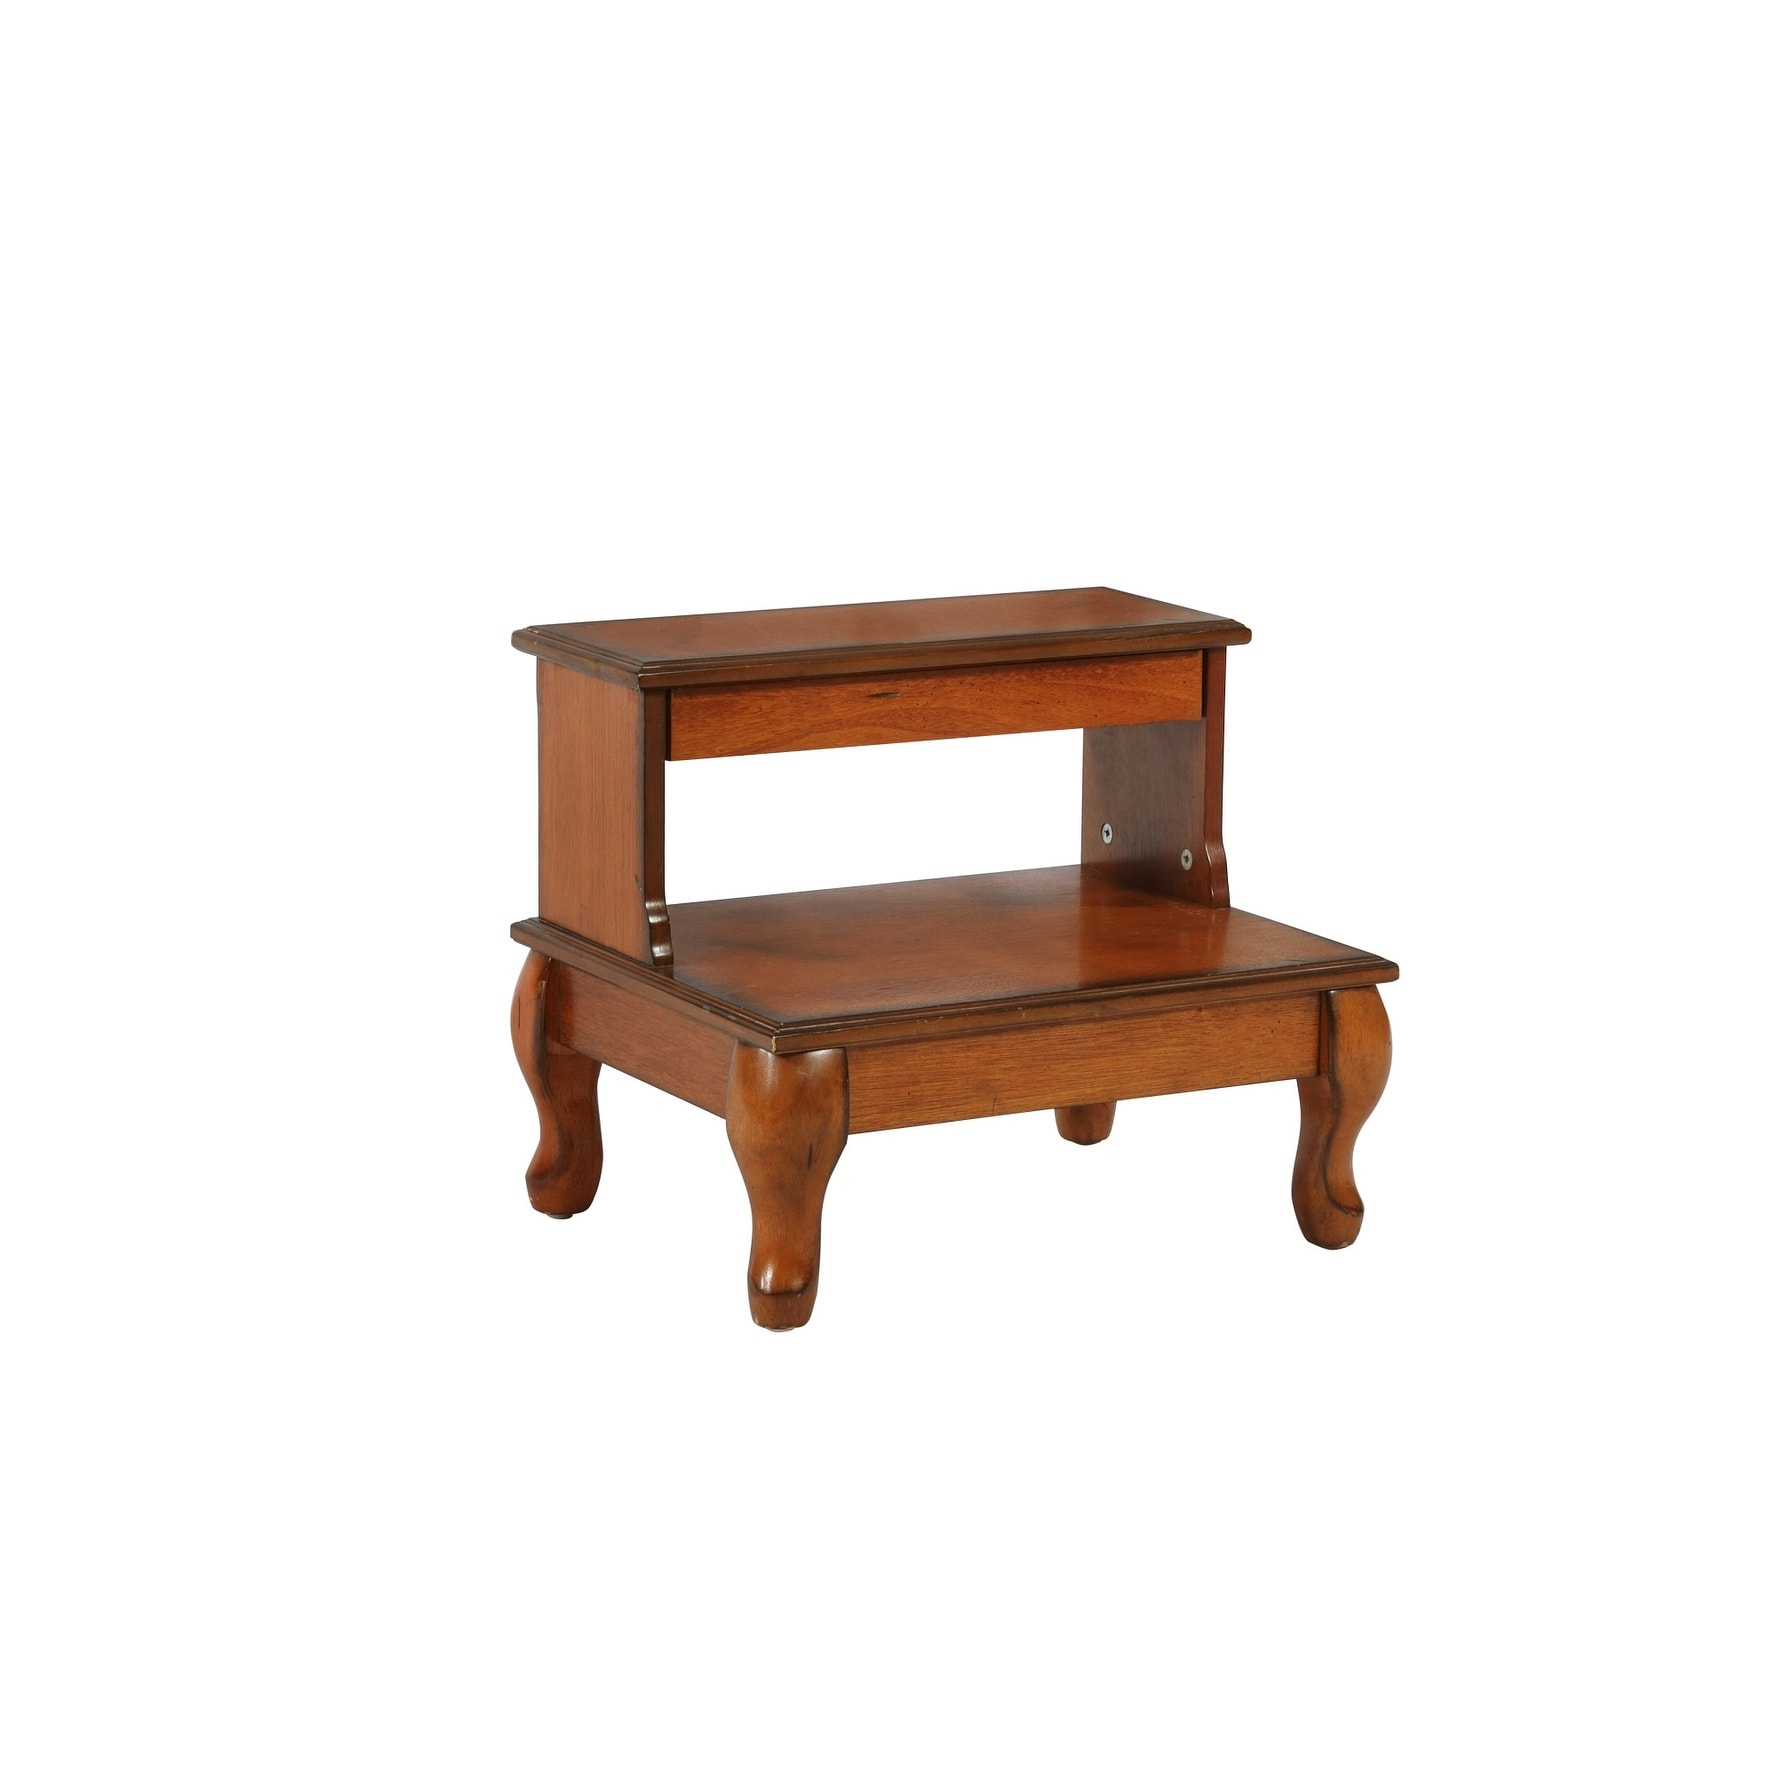 Powell Home Fashions 961 535 Attic 19 Wide Wood Veneer Step Stool Distressed Antique Cherry